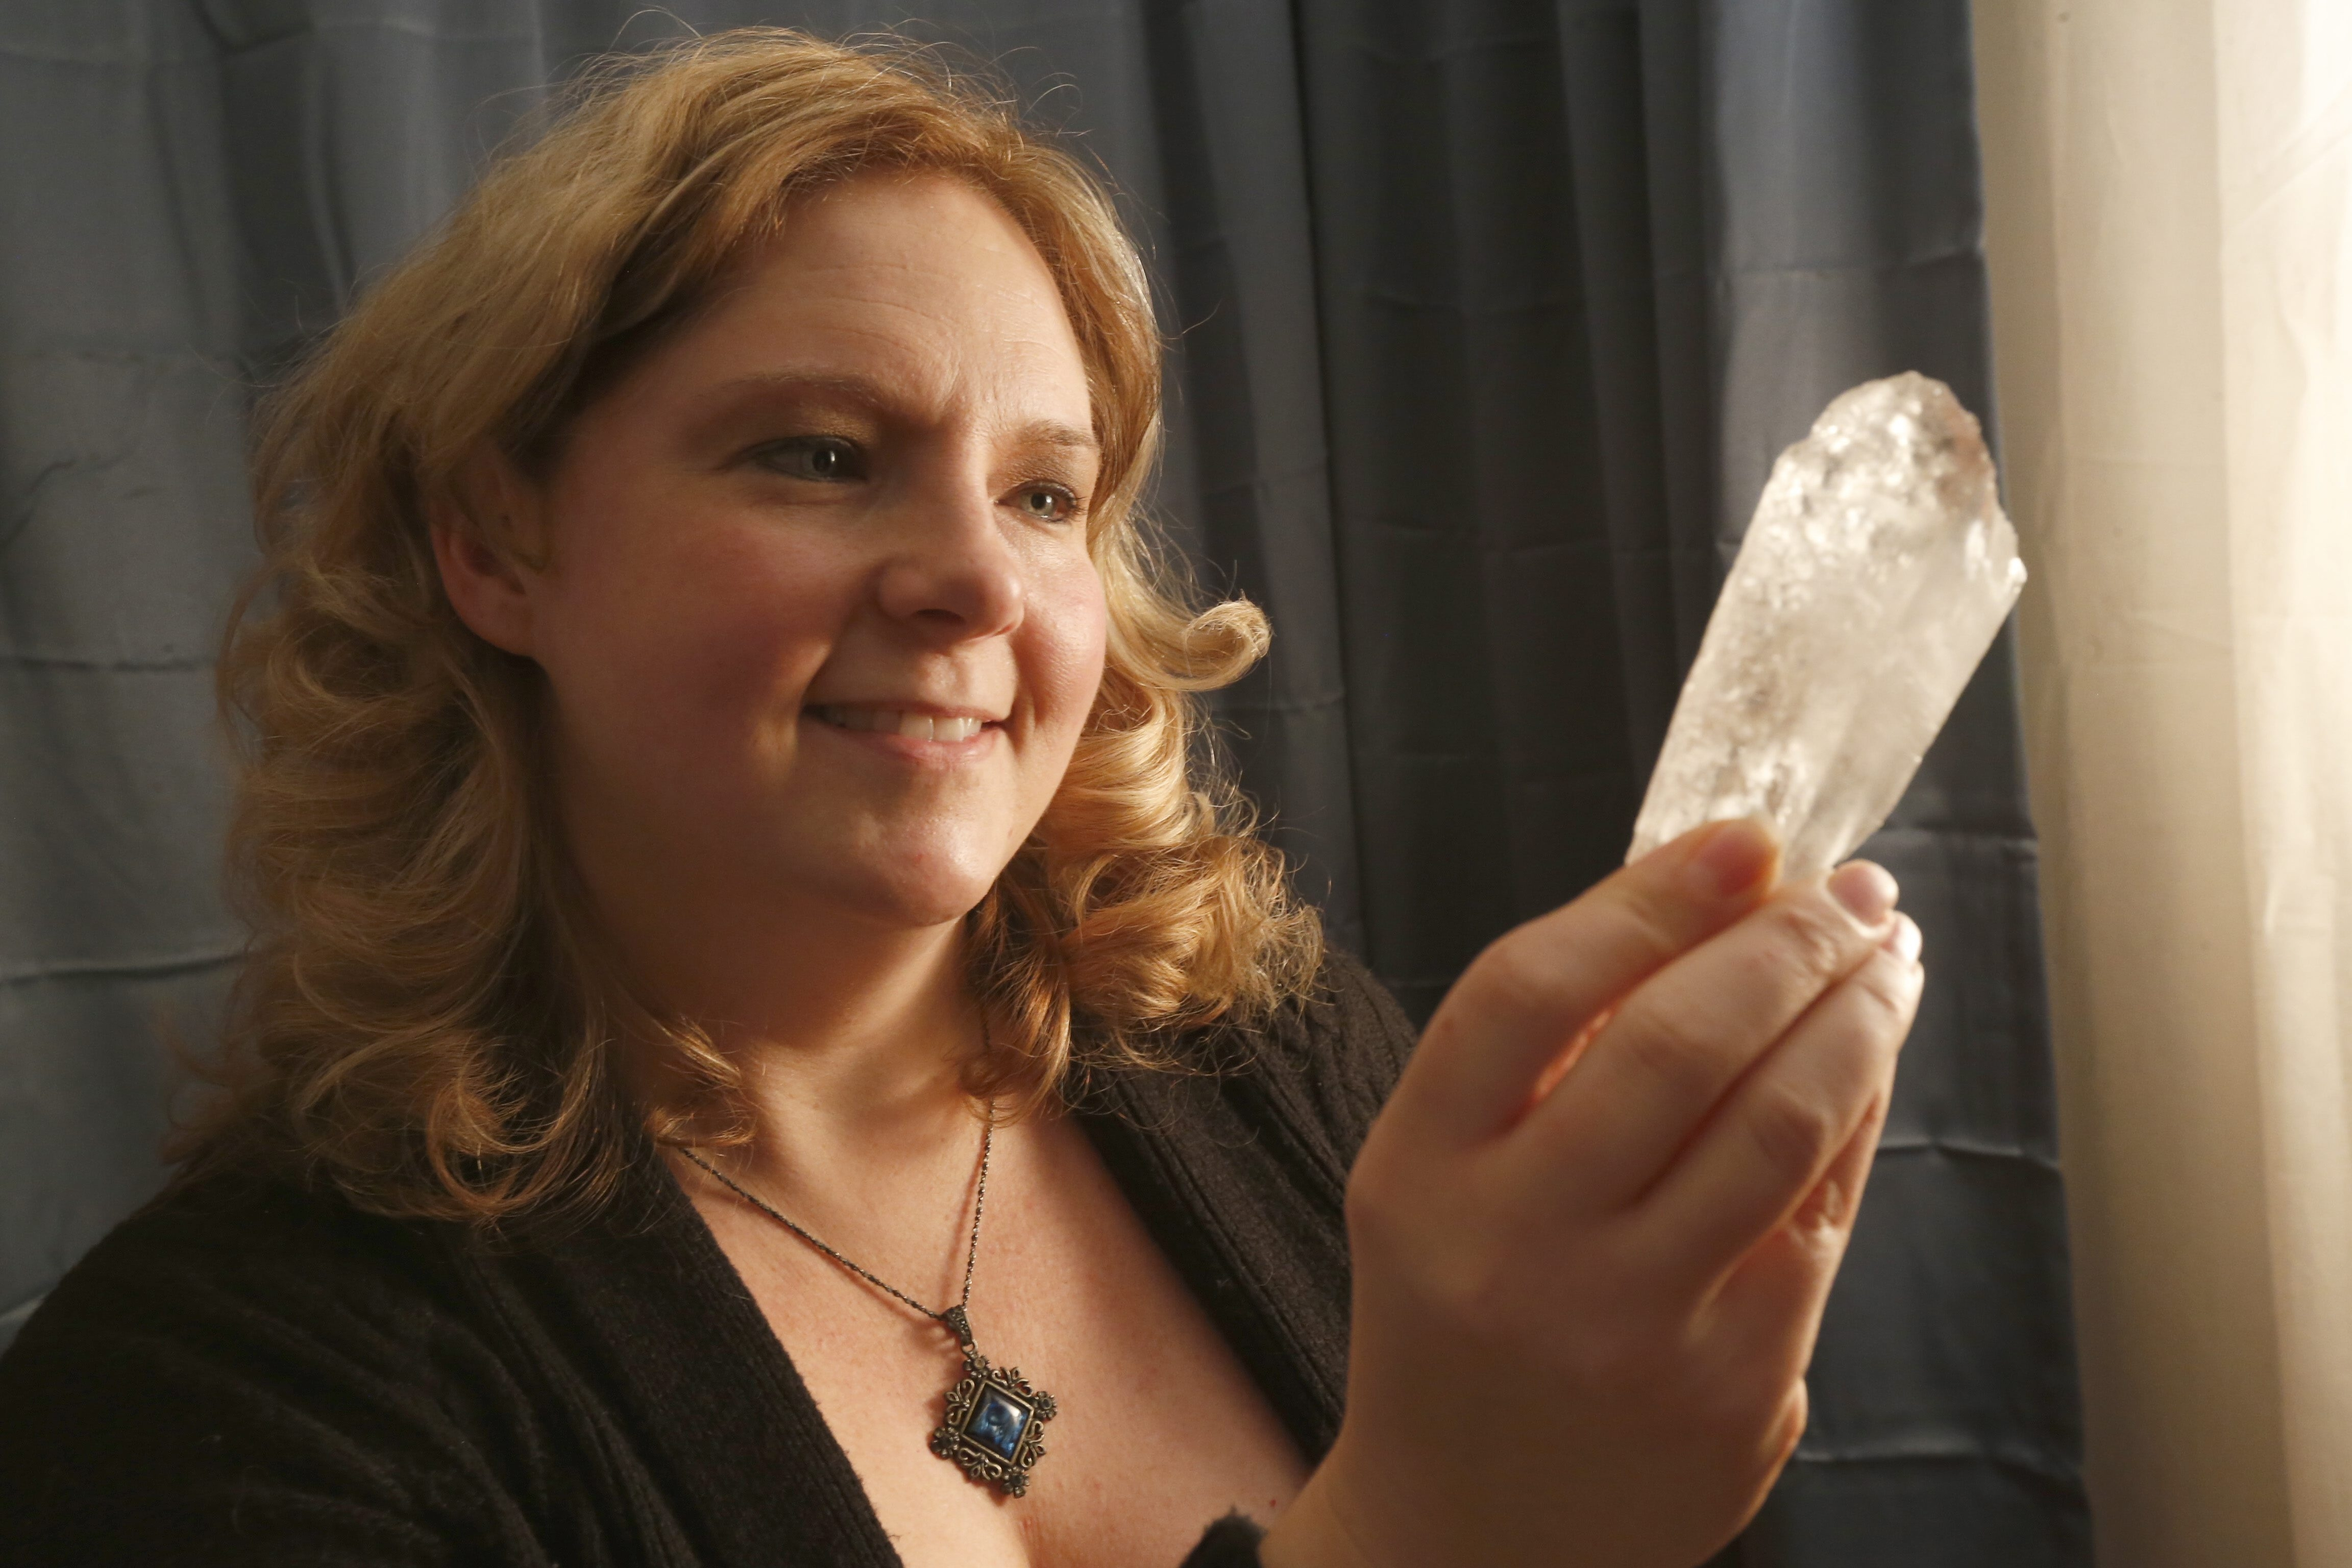 The Rev. Dr. Pamela Bruns gazes into a quartz healing stone at Spiritually Rooted II, her new location in Lewiston.